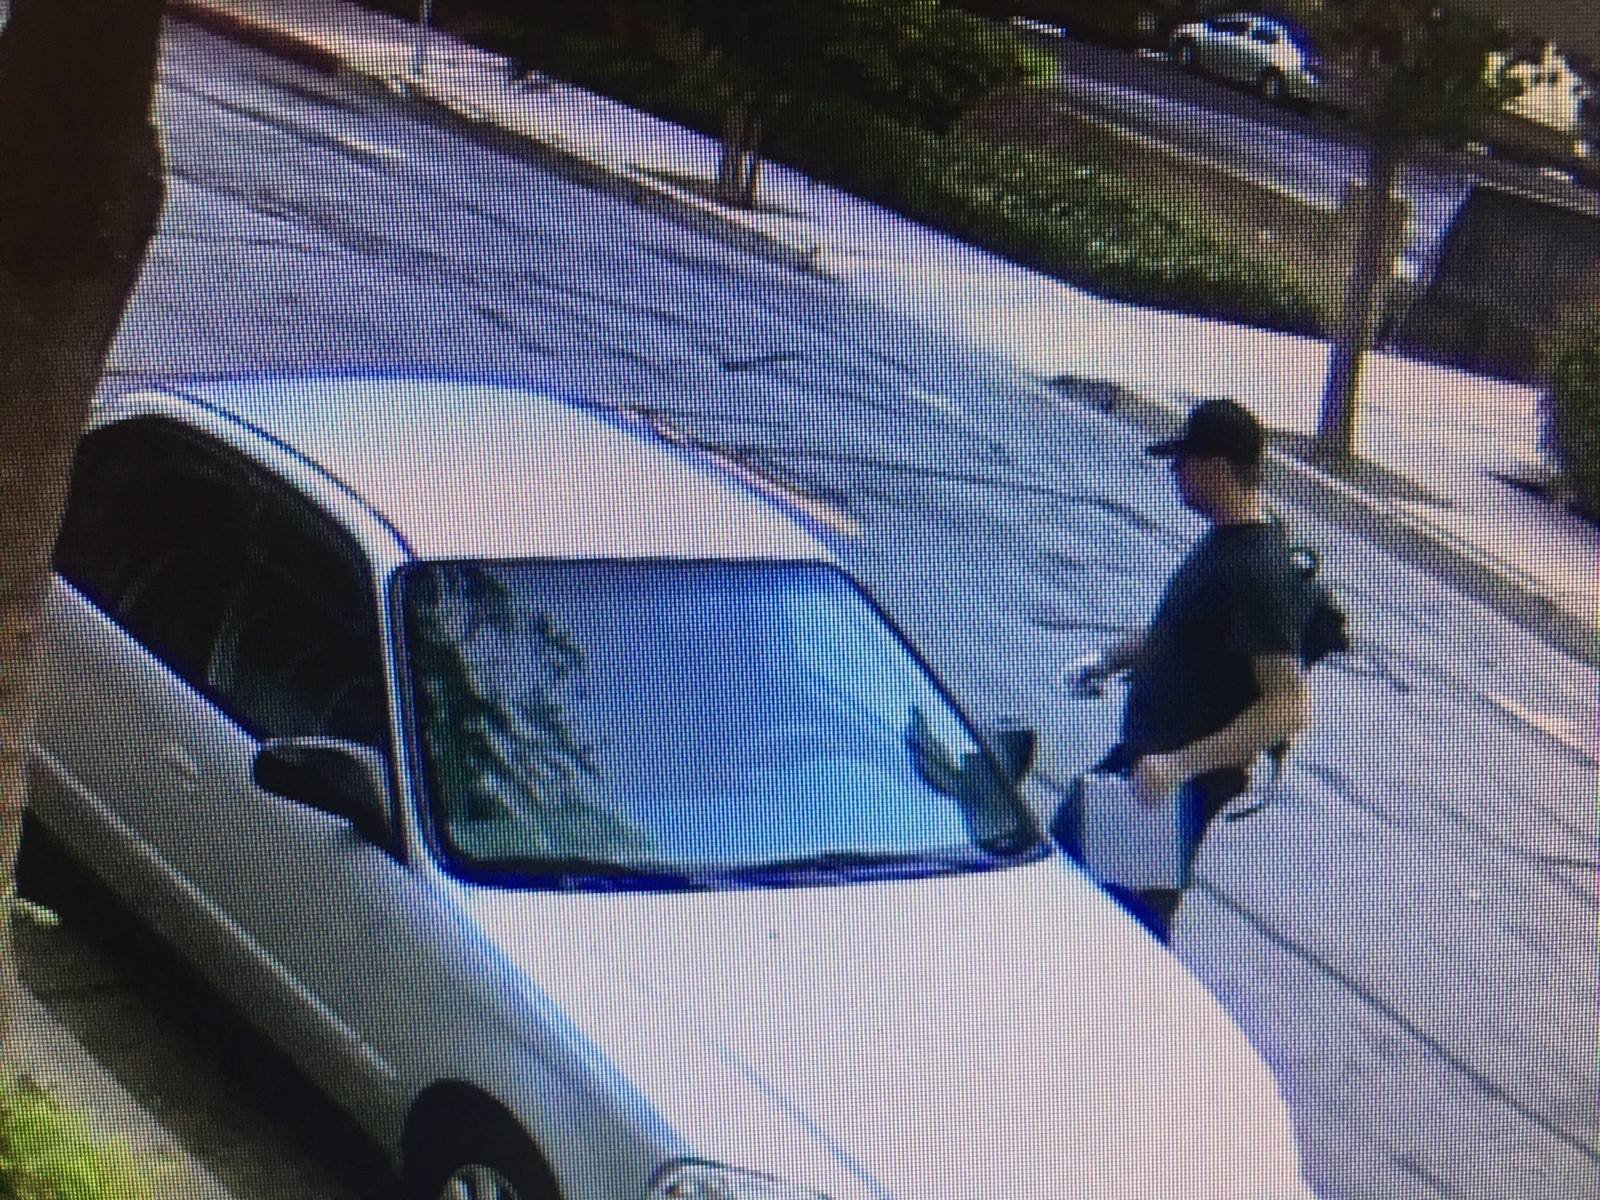 San Luis Obispo police released surveillance pictures of a man they say stole a car in the city recently. (Photo: SLOPD)